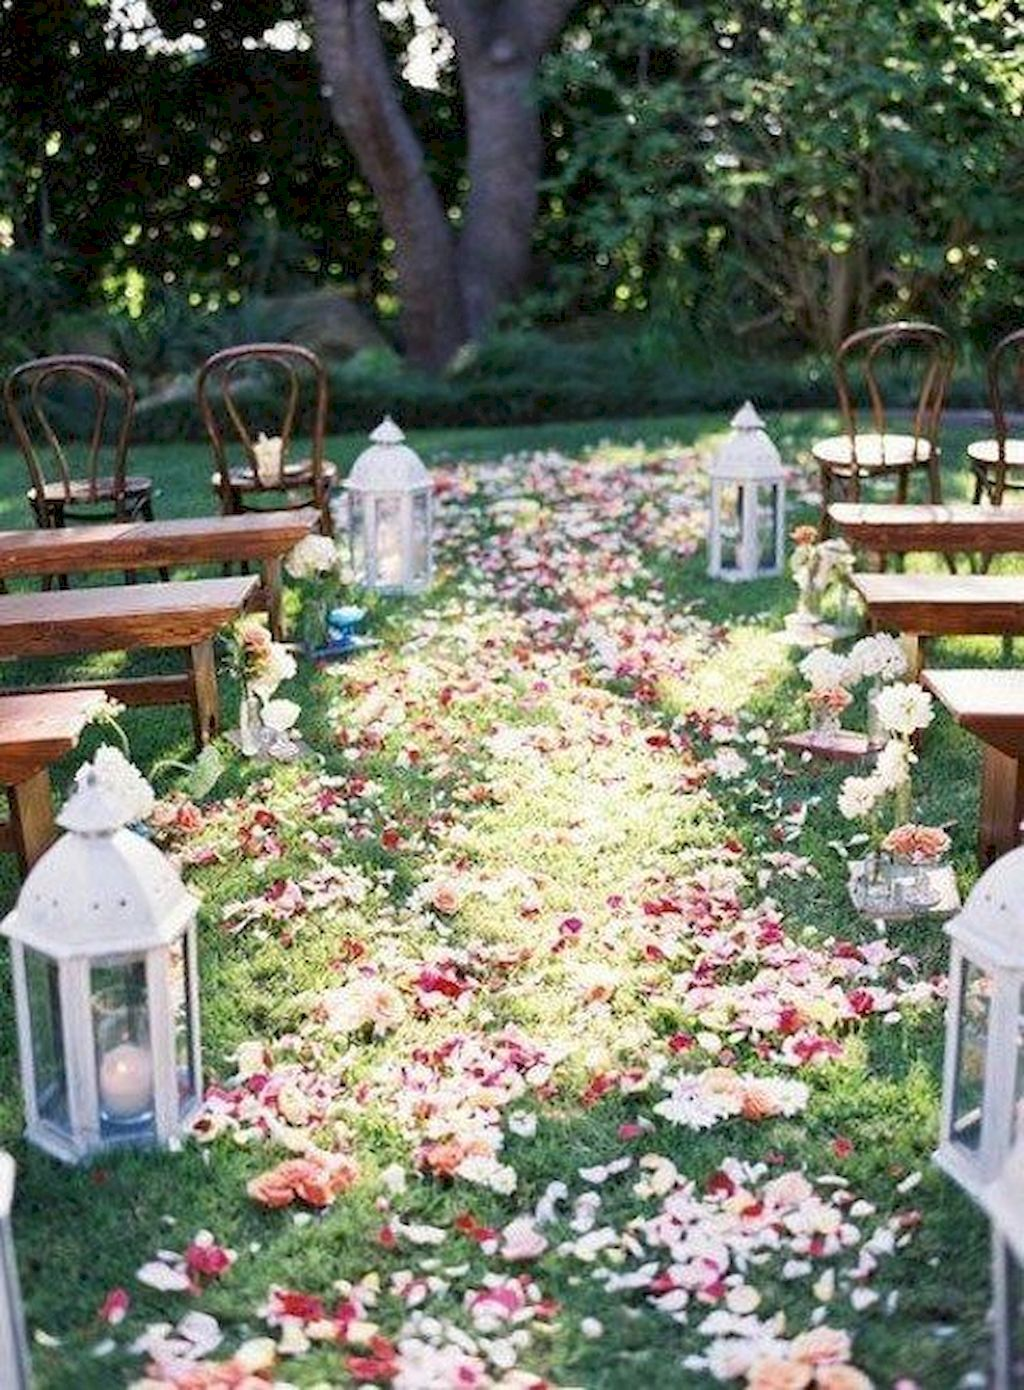 Ideas for wedding decorations outside   Inexpensive Backyard Wedding Decor Ideas  Dream wedding